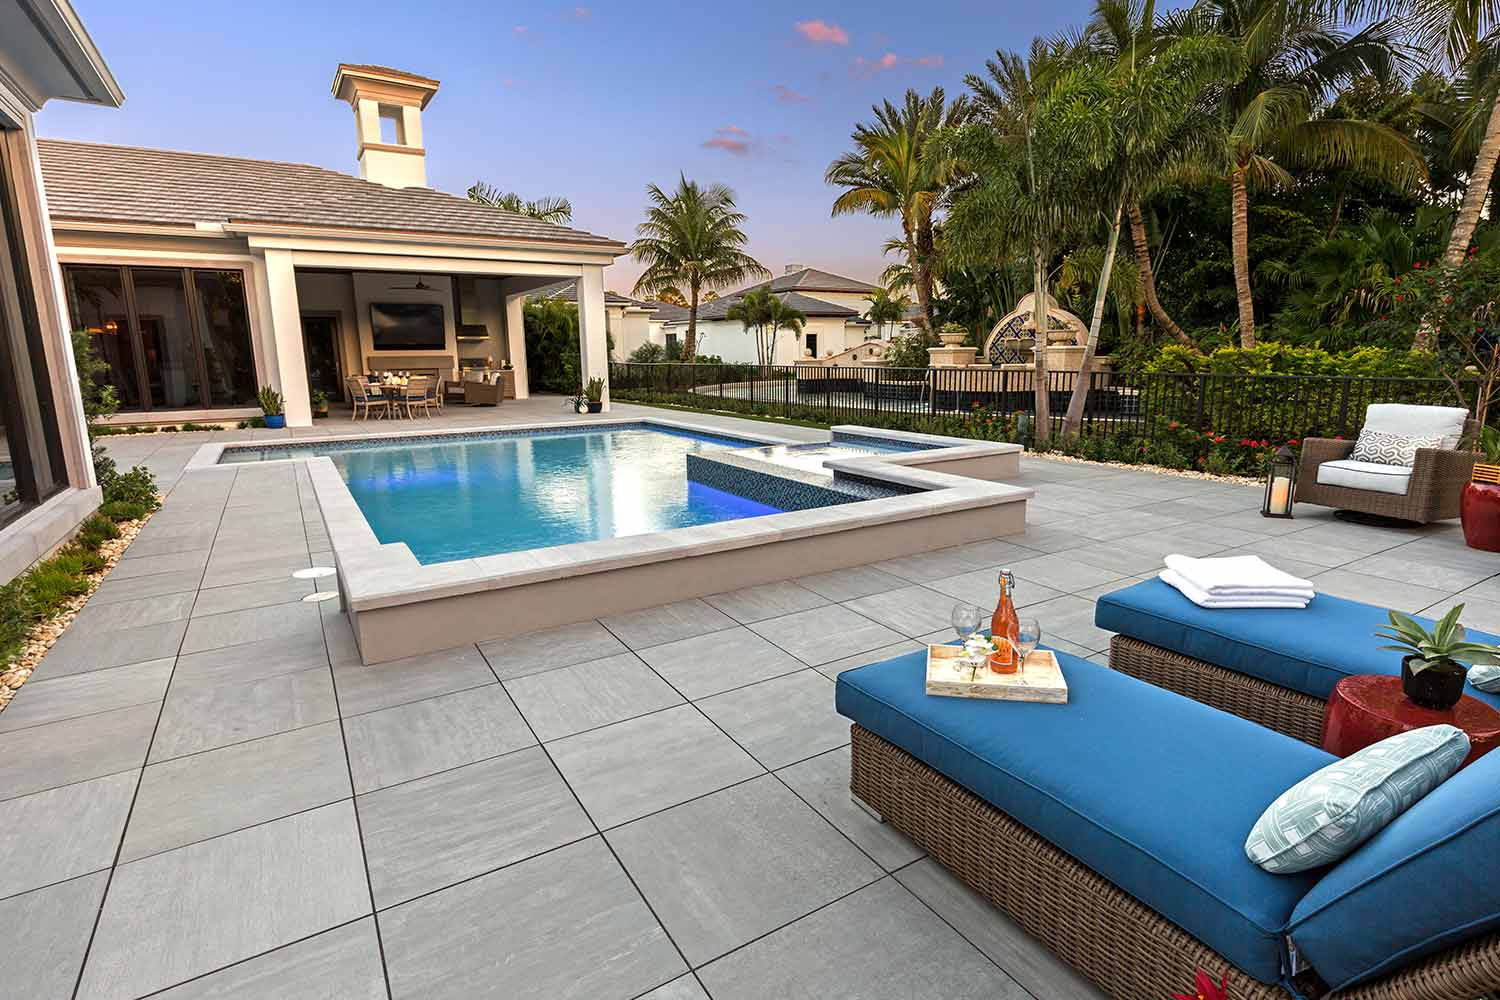 Porcelain Pool Deck Installation Hilton Head Island SC